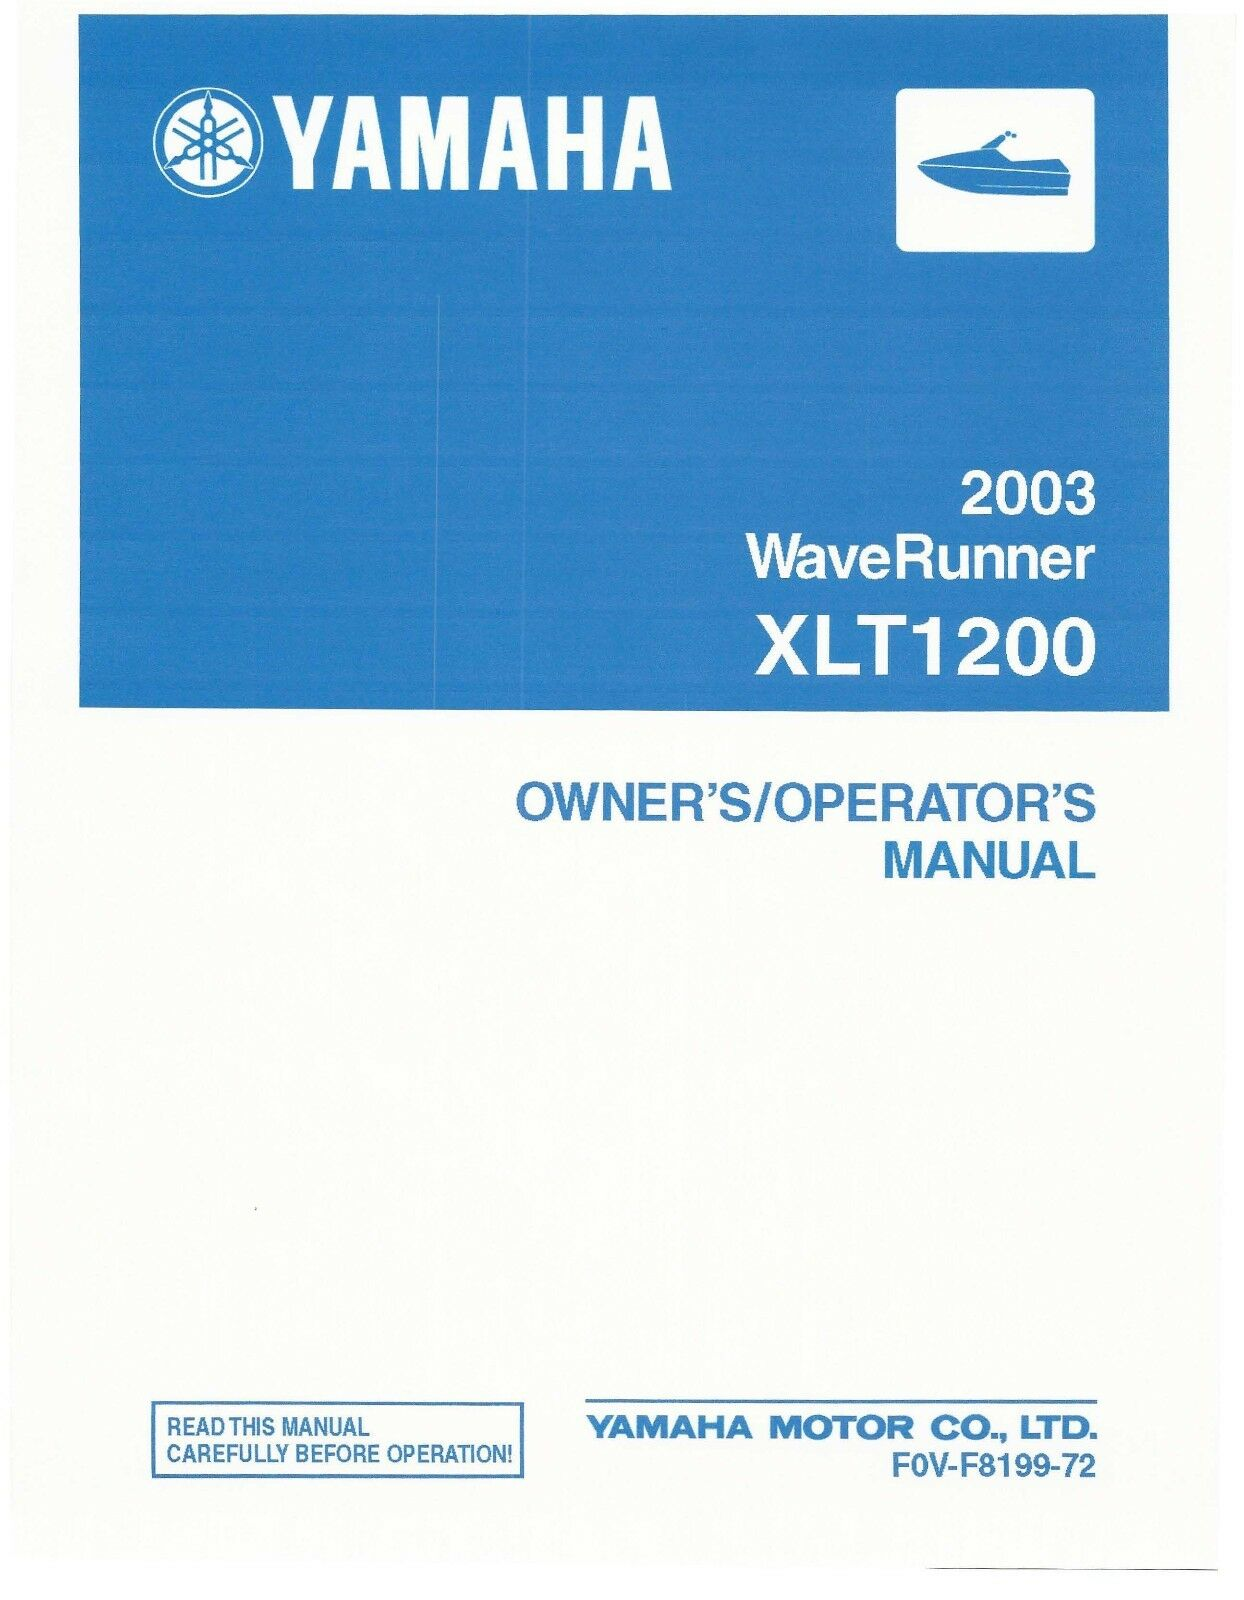 Yamaha Owners Manual Book 2003 WaveRunner XLT1200 1 of 1Only 1 available ...